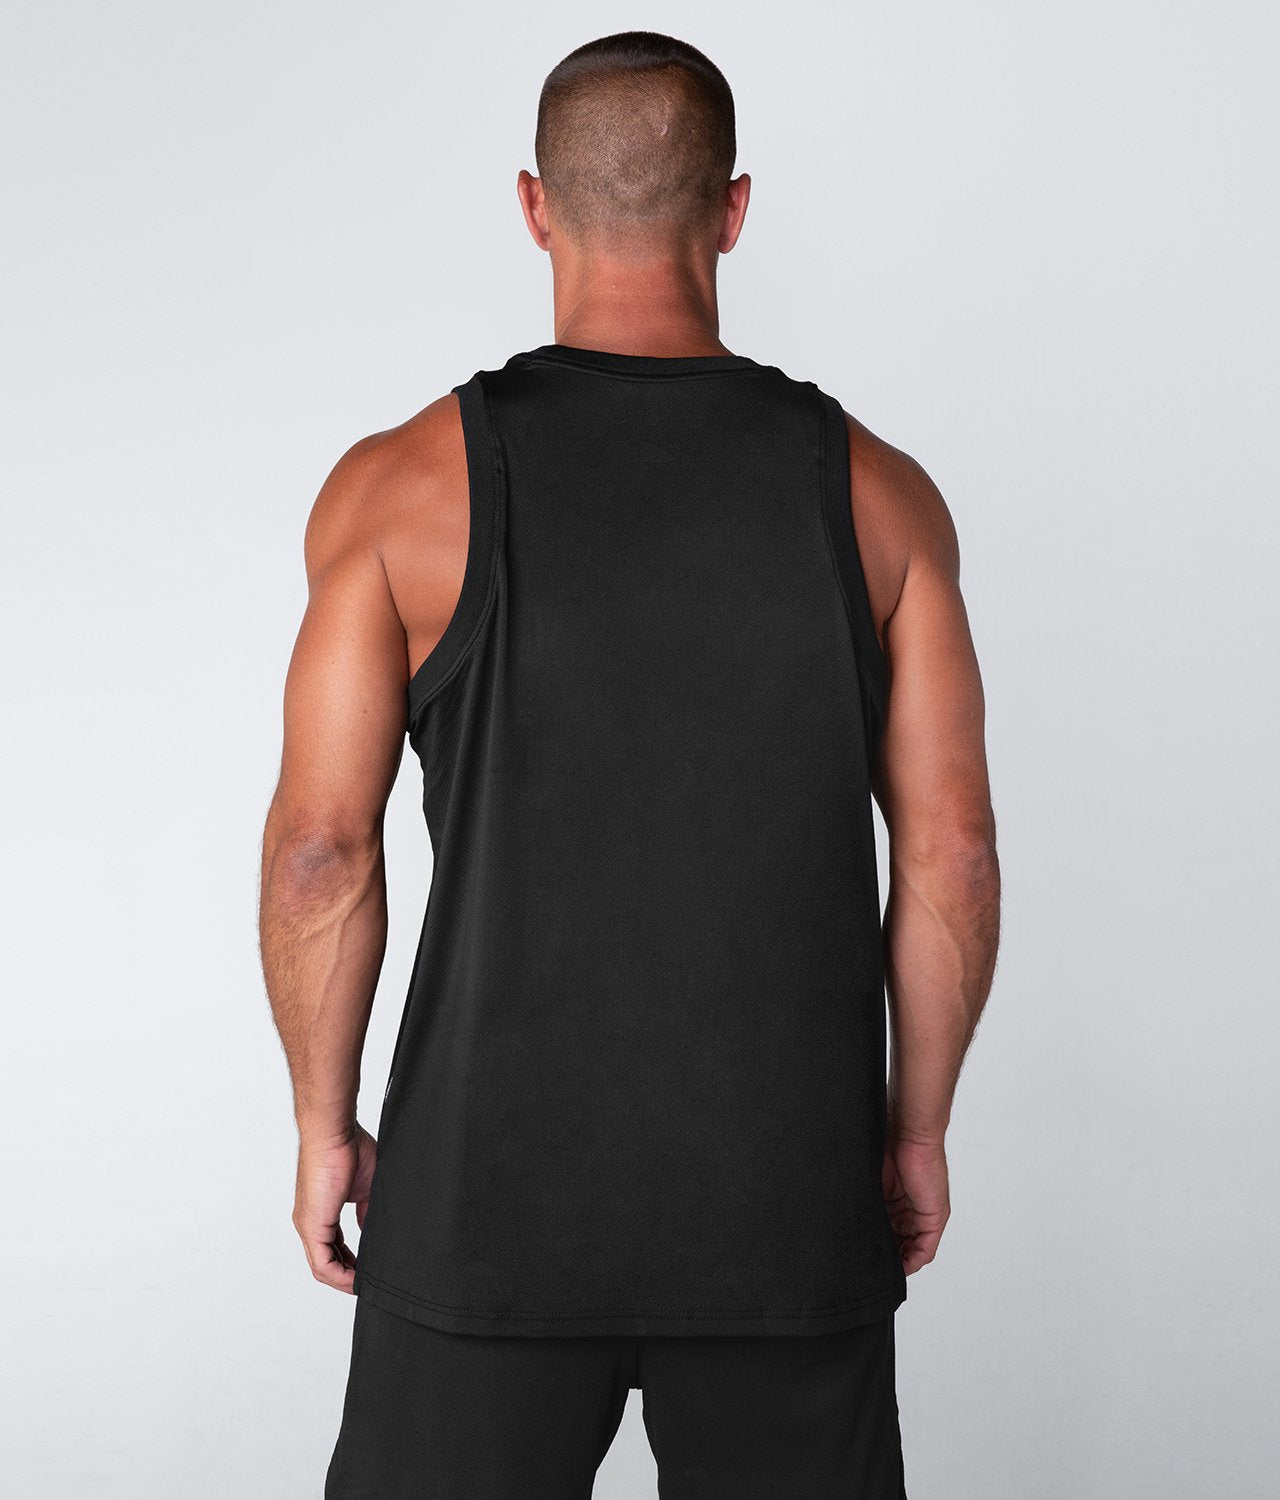 Born Tough United Kingdom Air Pro™ Black Fitted Highly Breathable Gym Workout Tank Top for Men